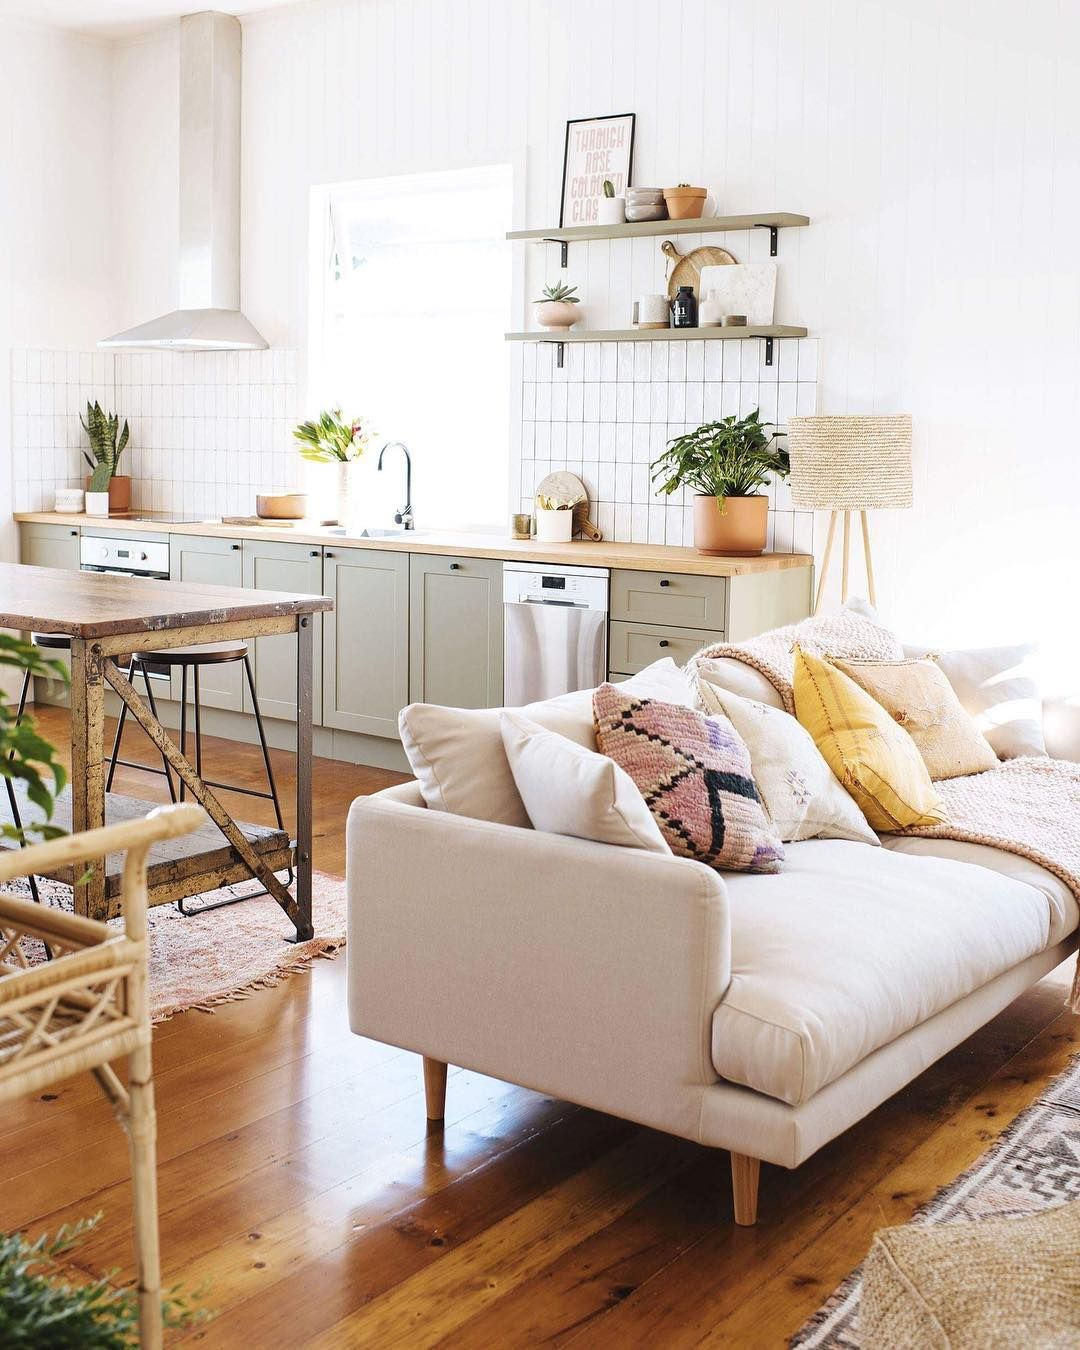 Living Room And Dining Room Together: Insta And Pinterest @amymckeown5